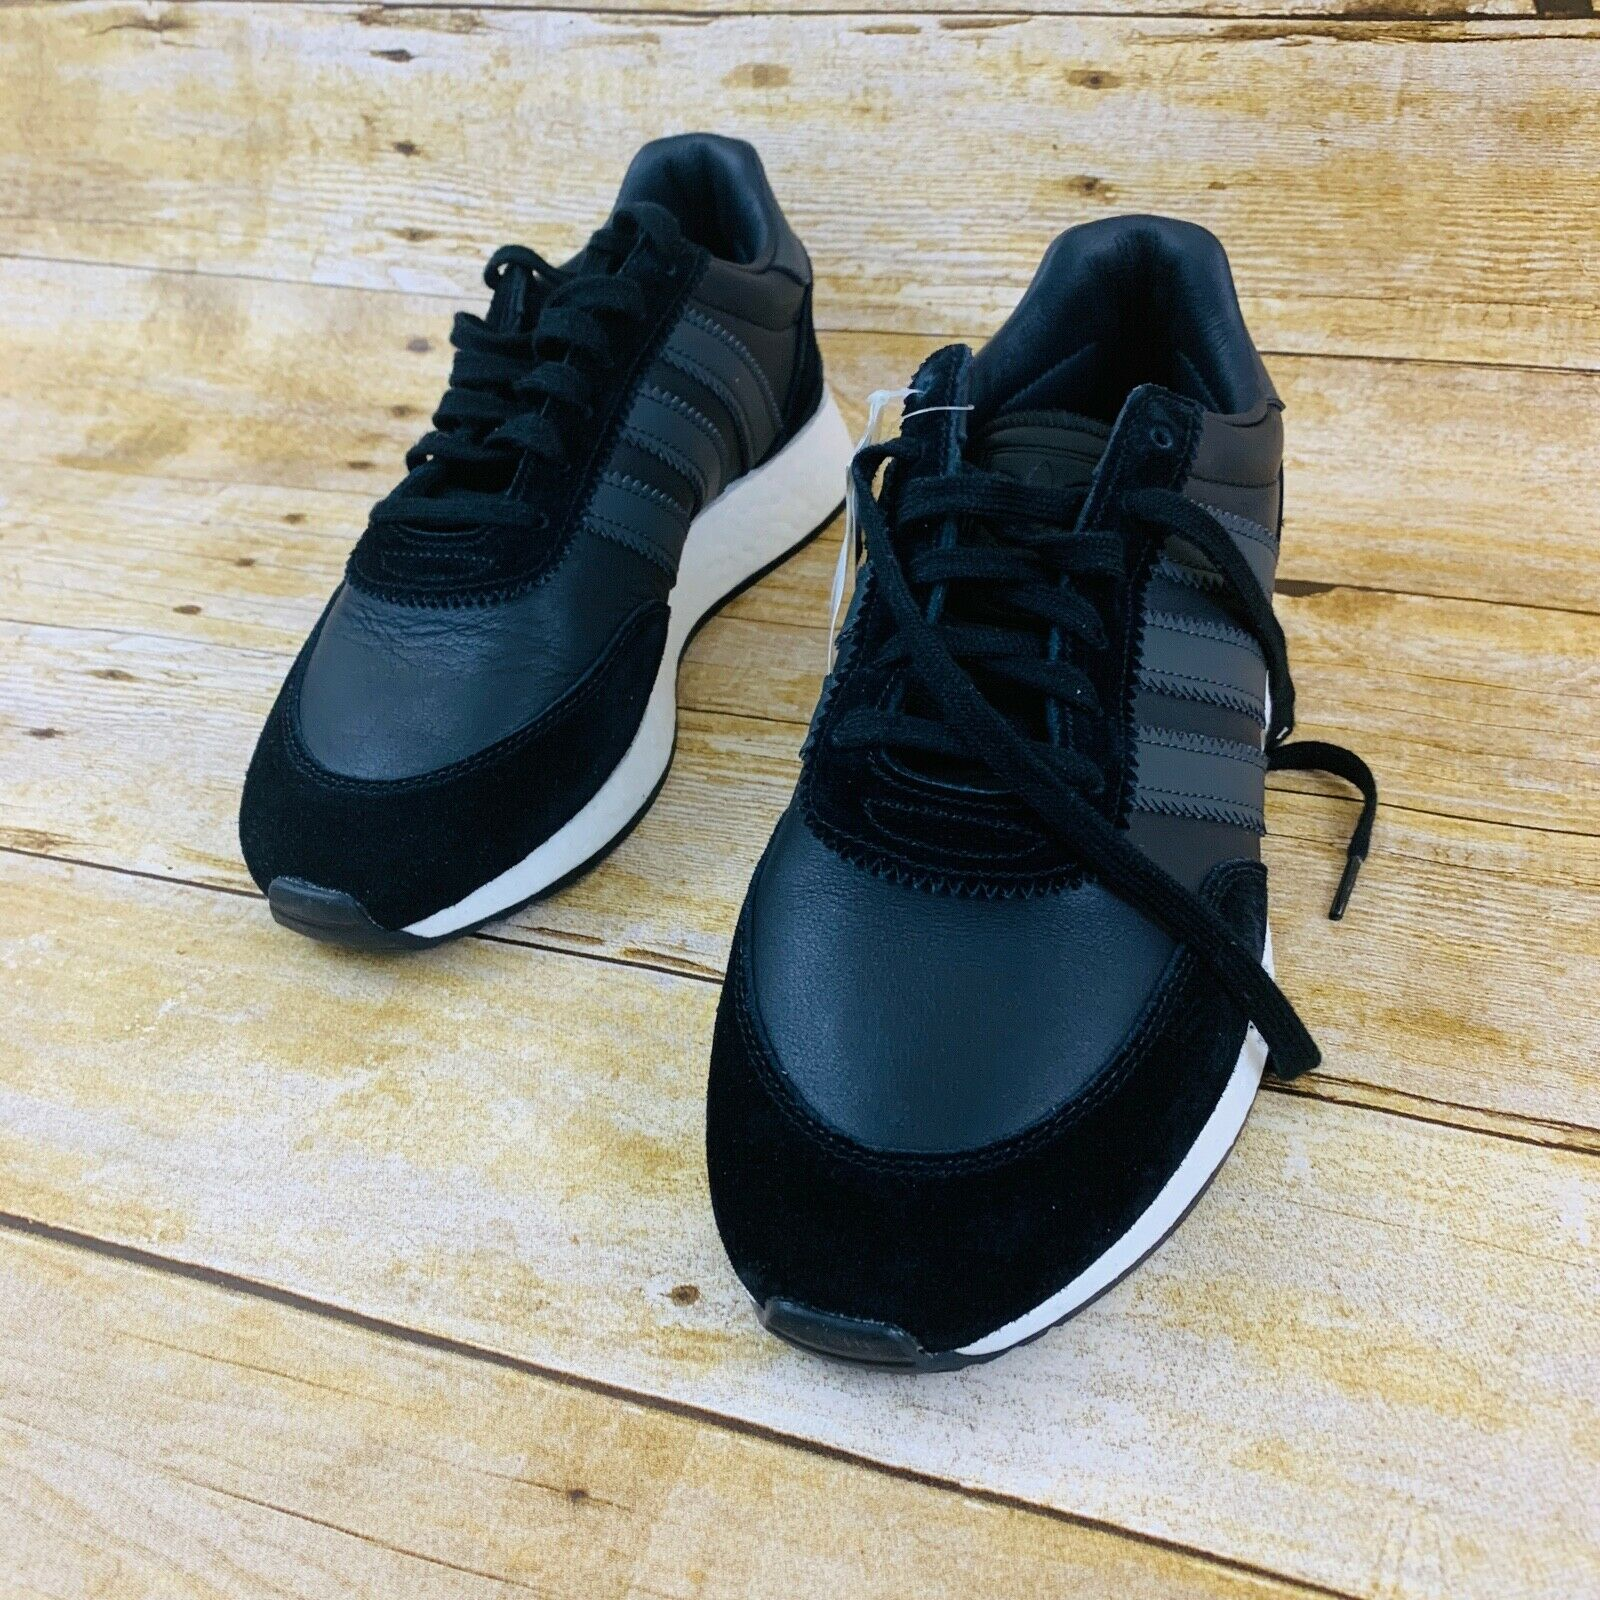 New Adidas Originals I-5923 Leather shoes Casual Boost Athletic Black-White sz9